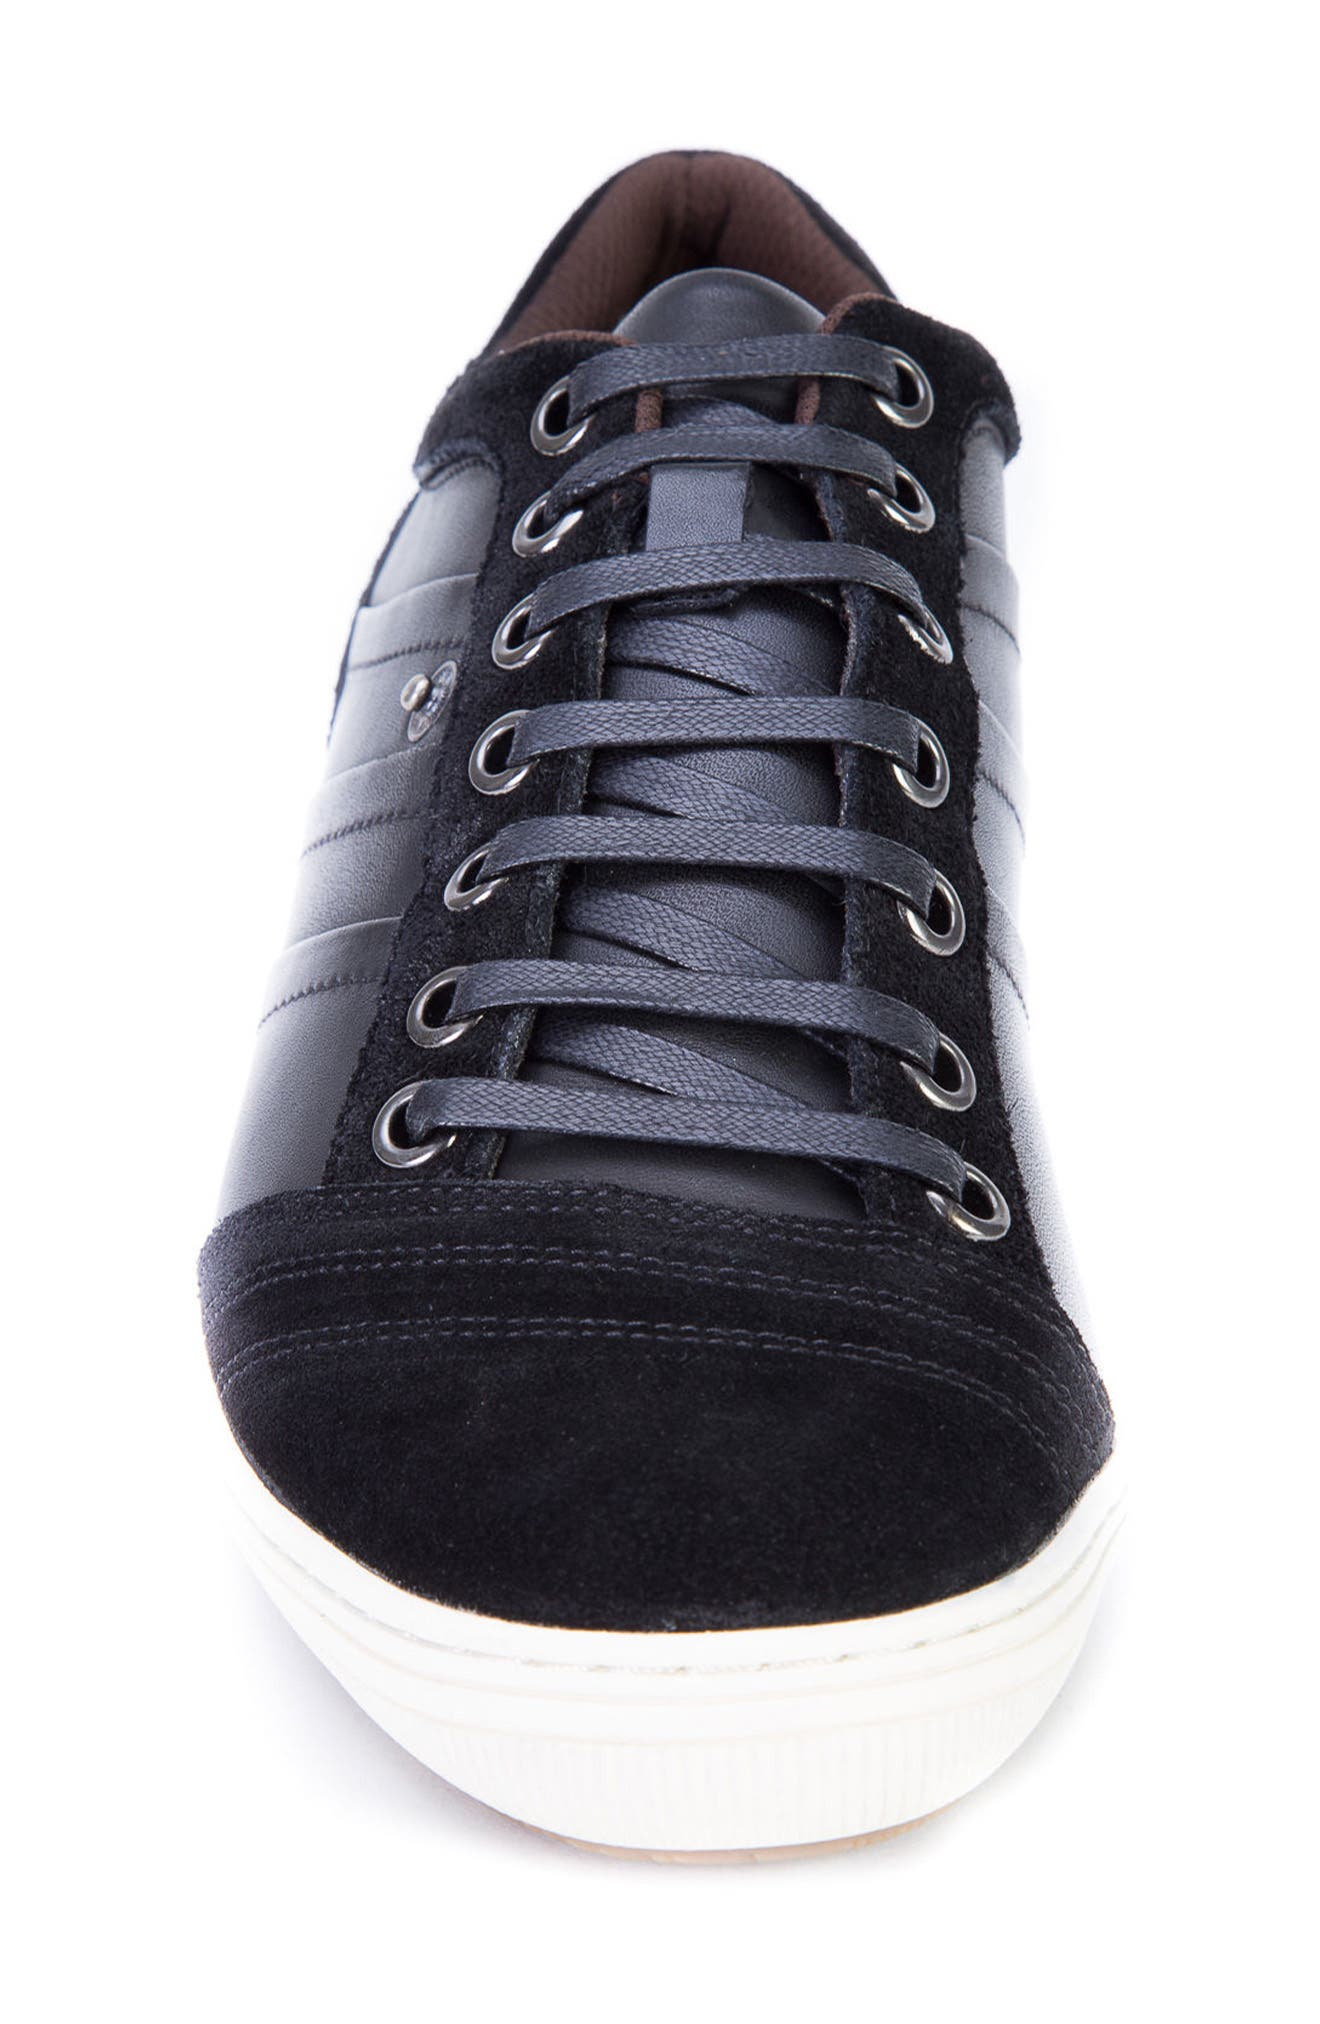 Jive Sneaker,                             Alternate thumbnail 4, color,                             Black Leather/Suede